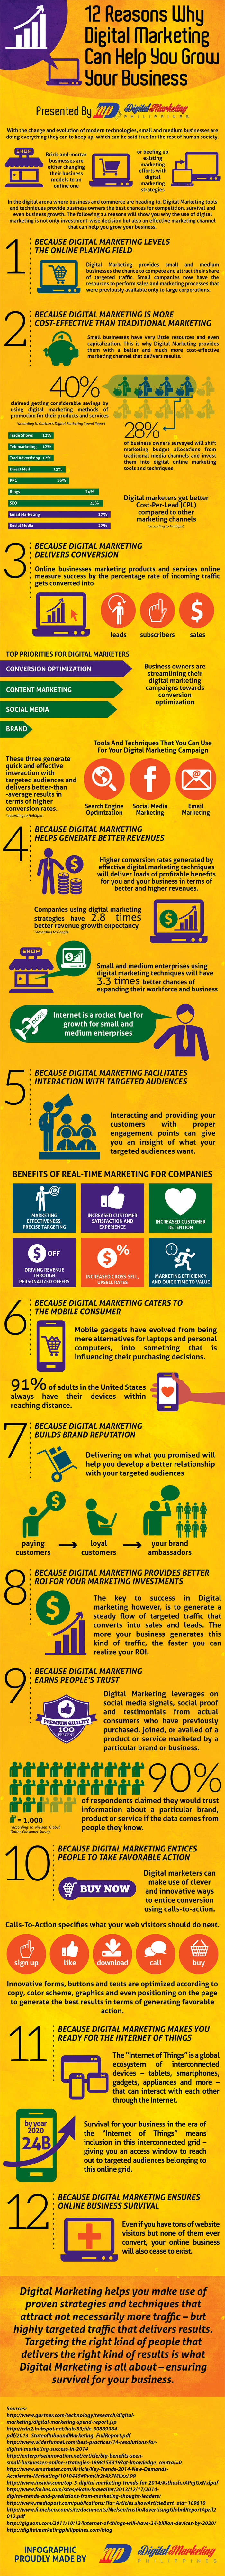 Use of Digital Marketing